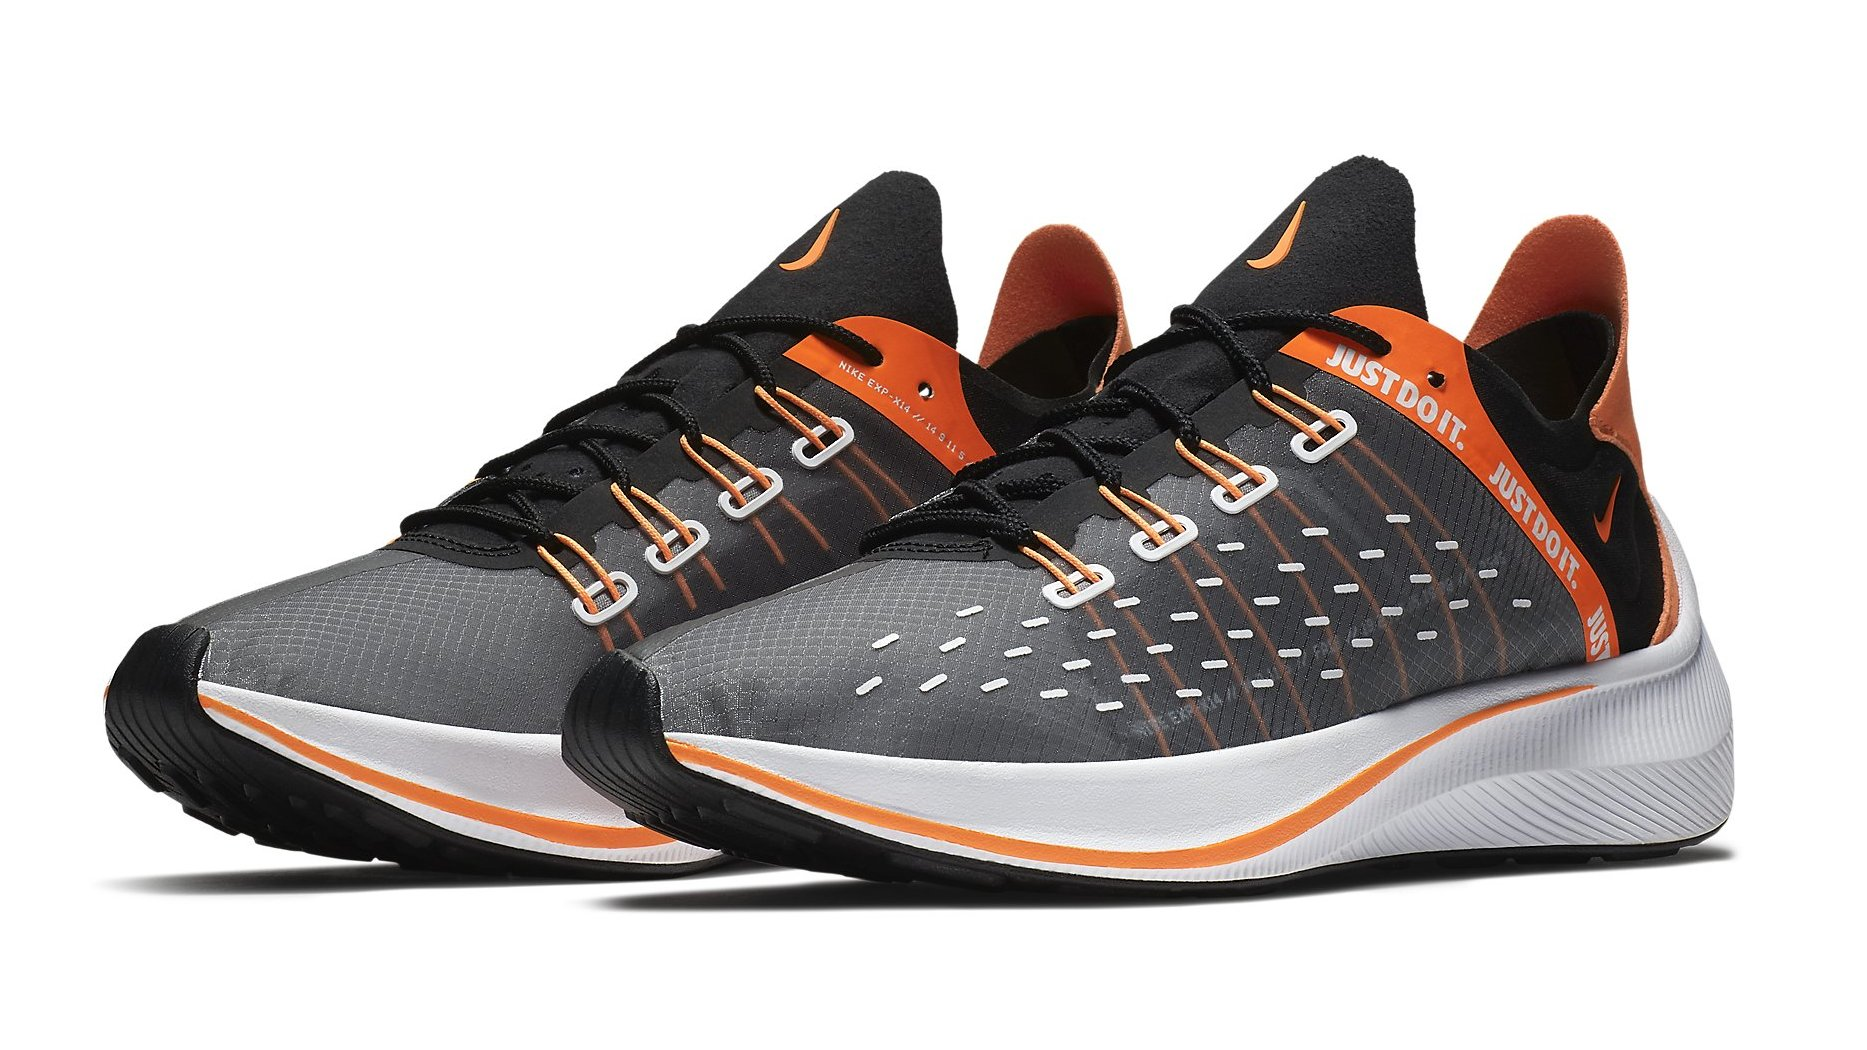 Mimar Estar confundido Calígrafo  Nike 'Just Do It' EXP-X14 Collection Release Date July 6, 2018 | Sole  Collector